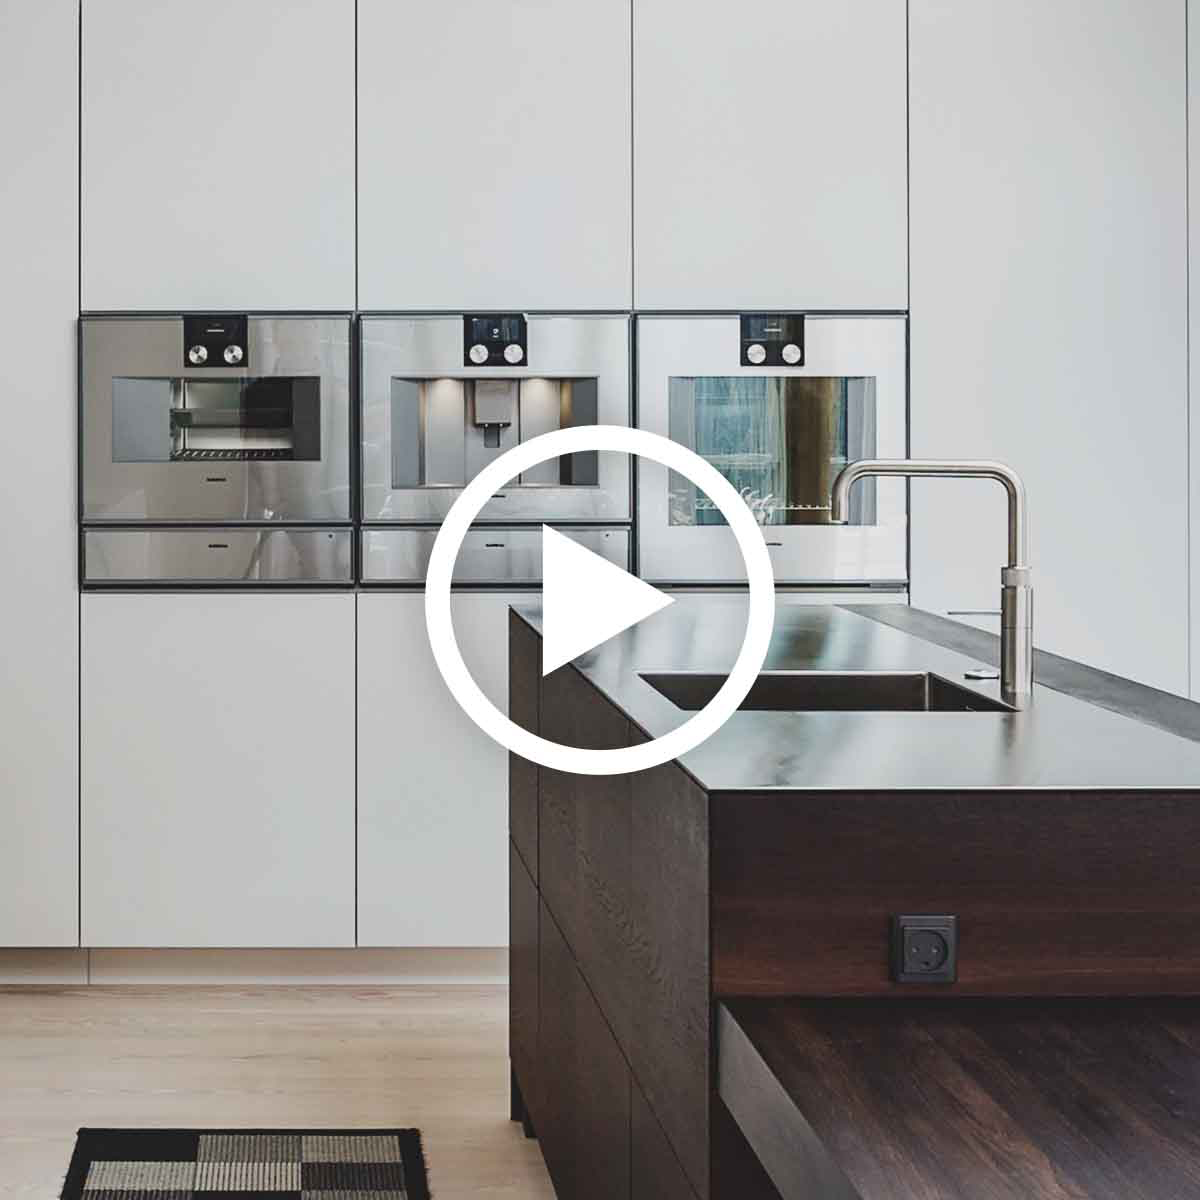 Makers: Gaggenau